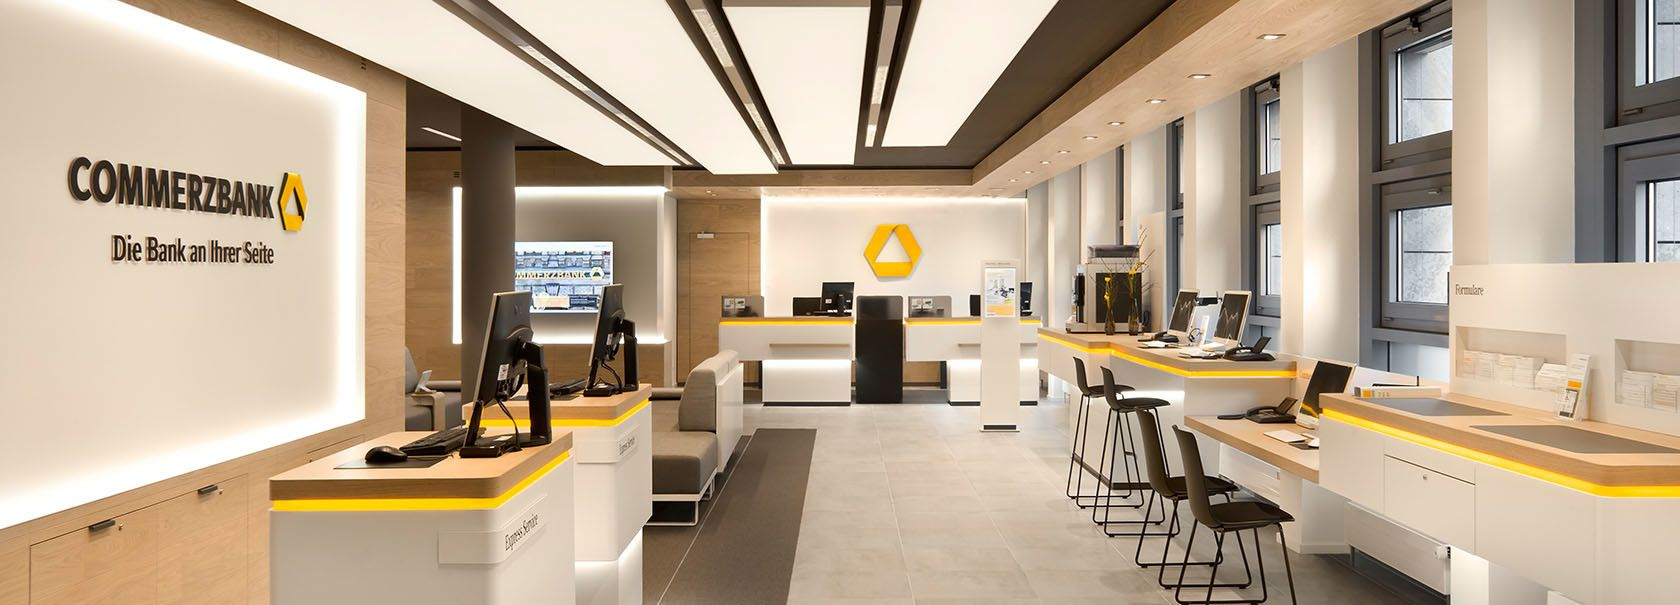 Commerzbank Flagship Branch Concept Bank Interior Design Bank